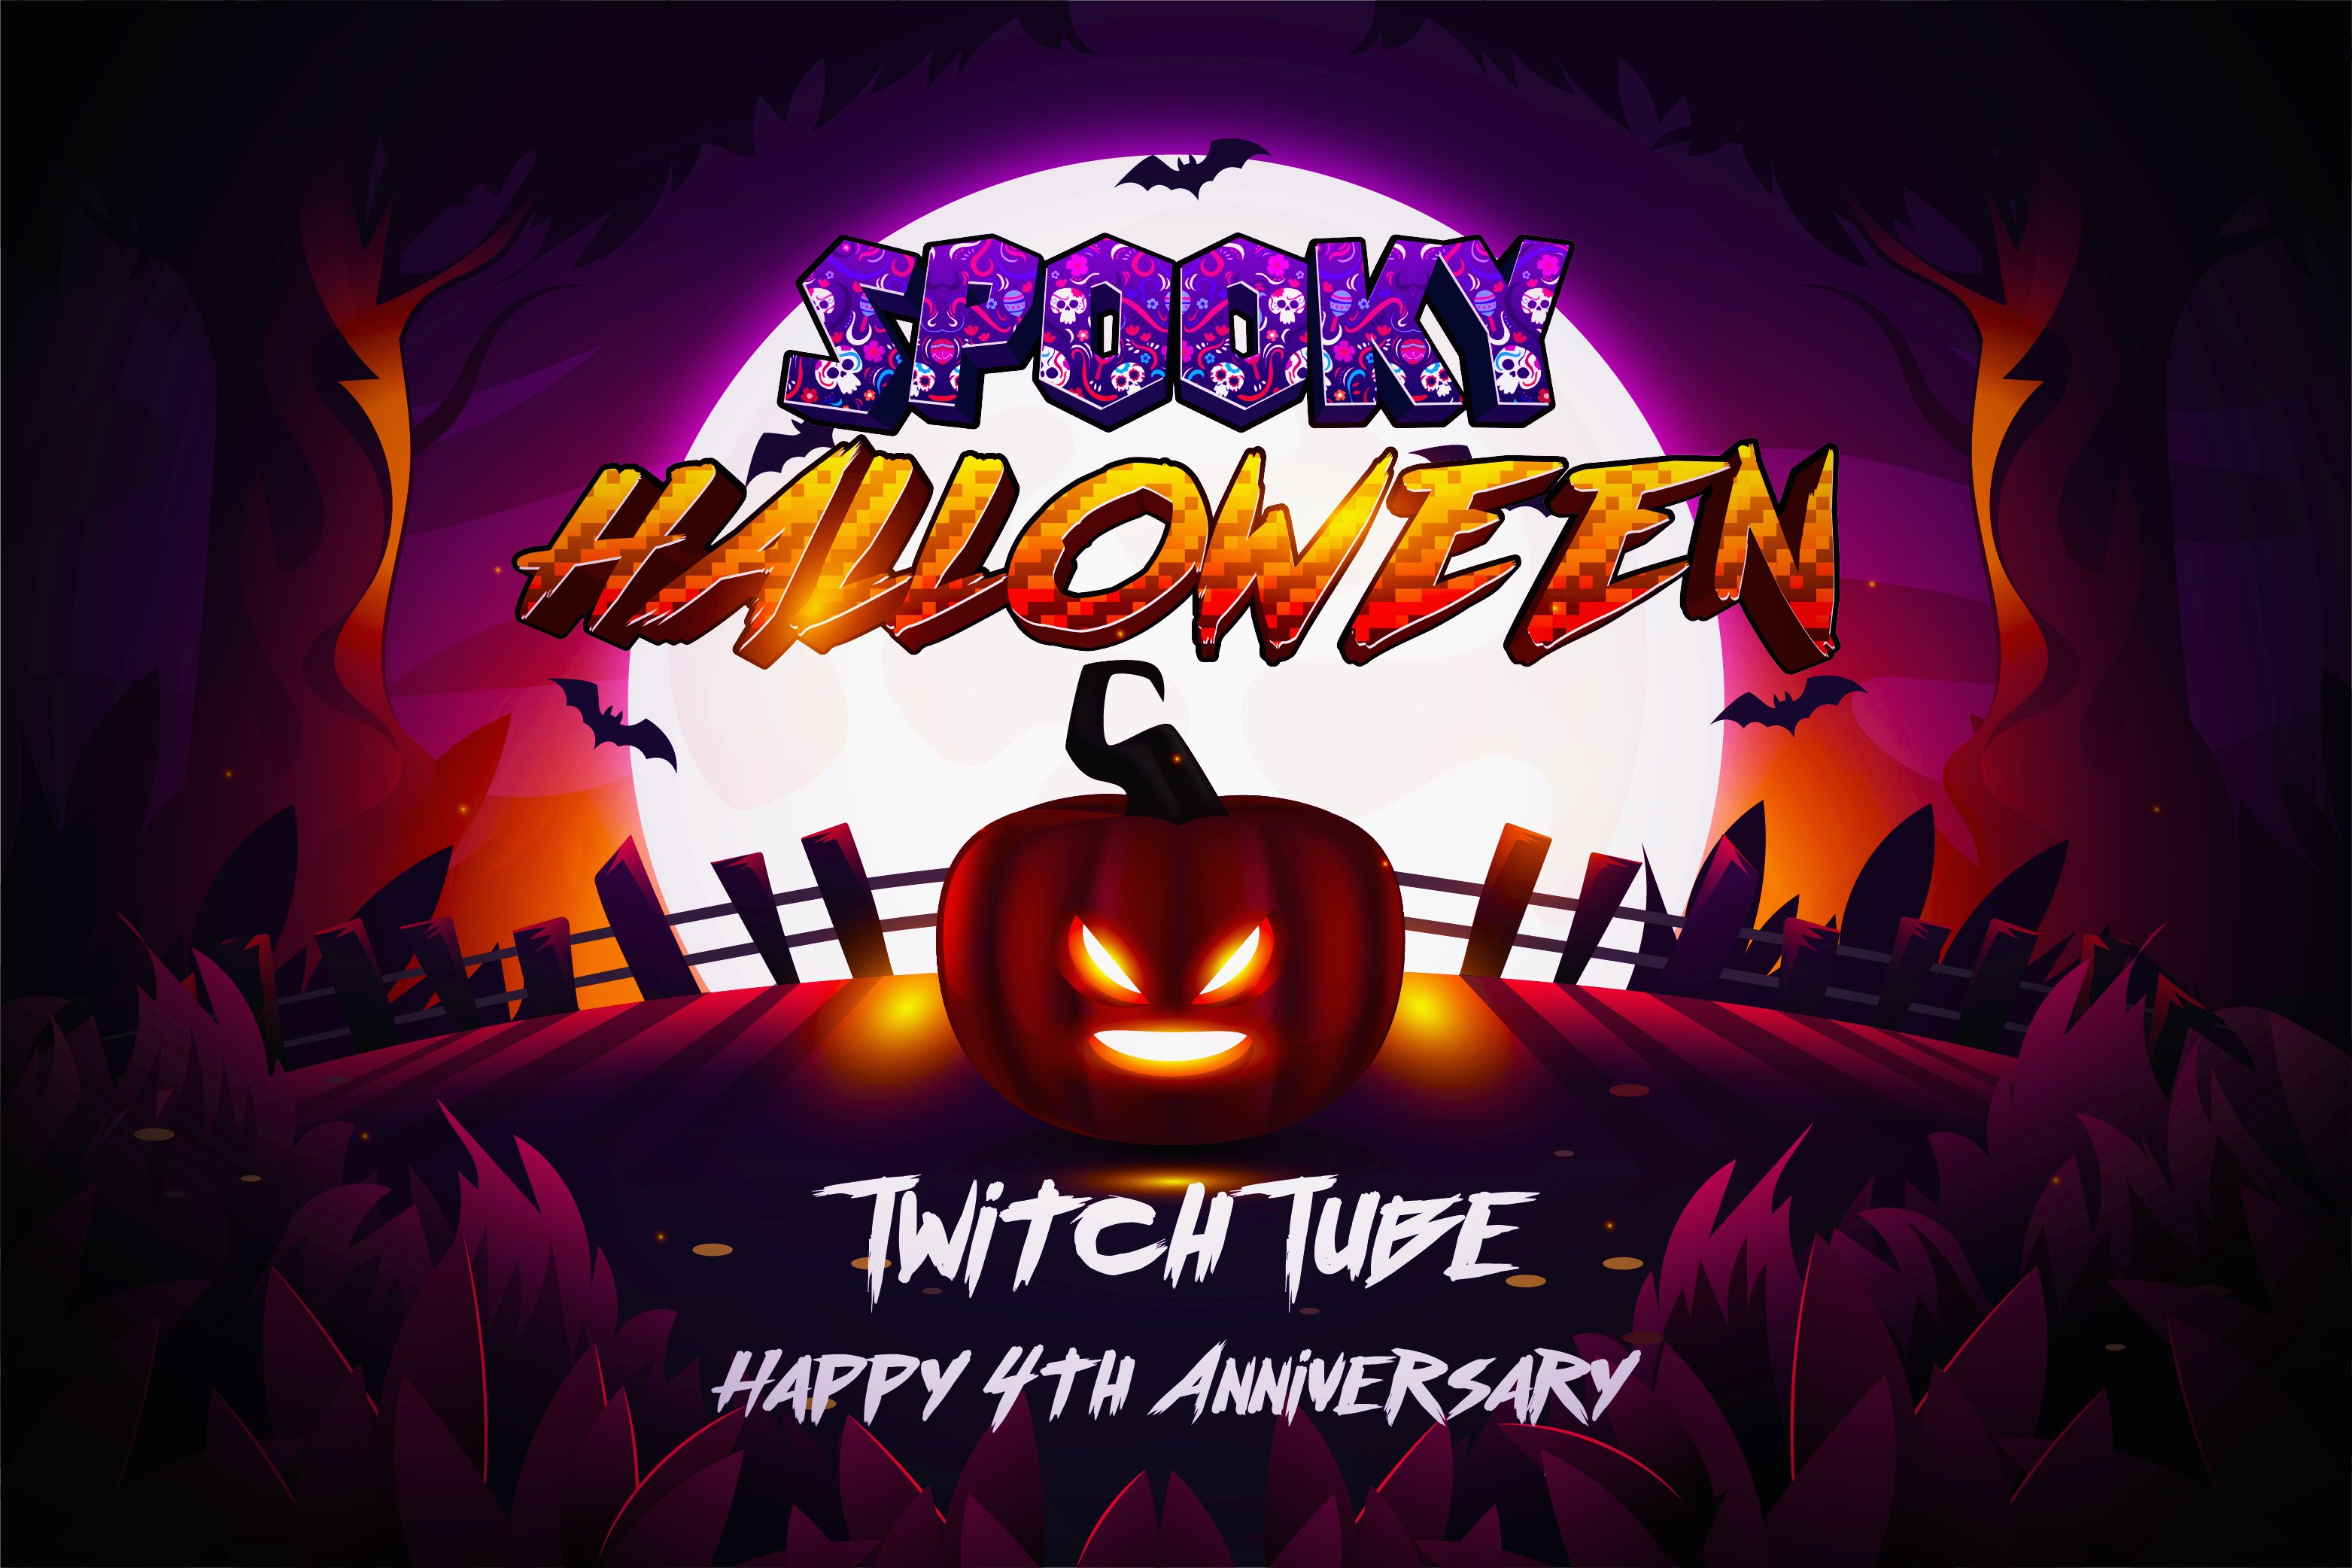 Come join us for our 4th anniversary and enjoy our Halloween update, where we will be playing, laughing and doing giveaways throughout the month of October!